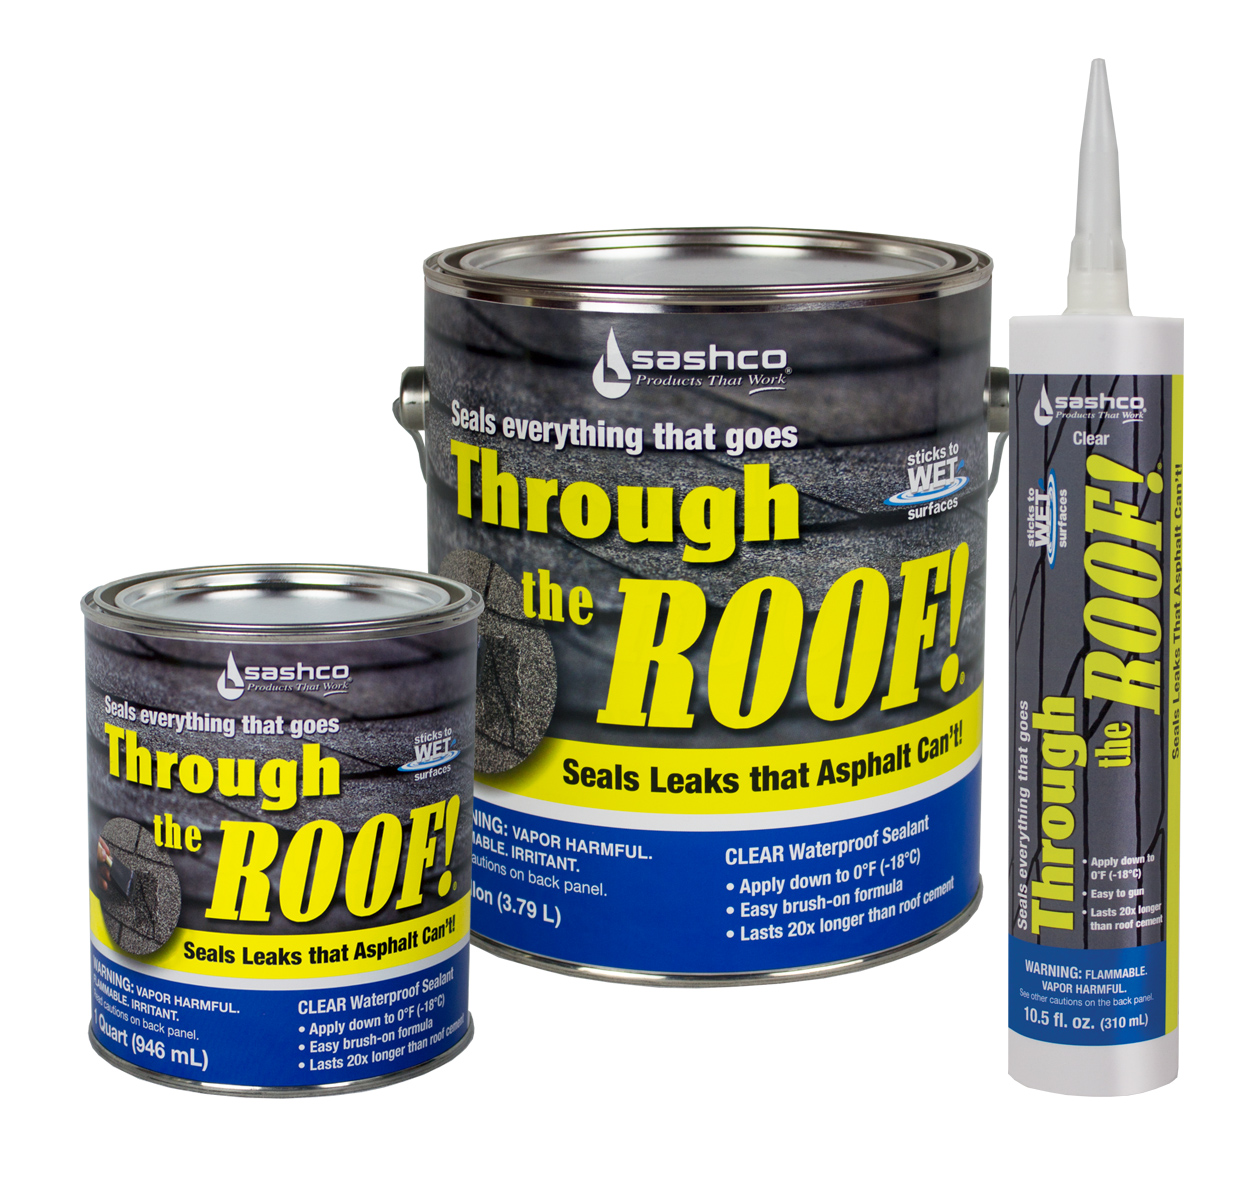 Through The Roof Clear Waterproof Sealant Capitol